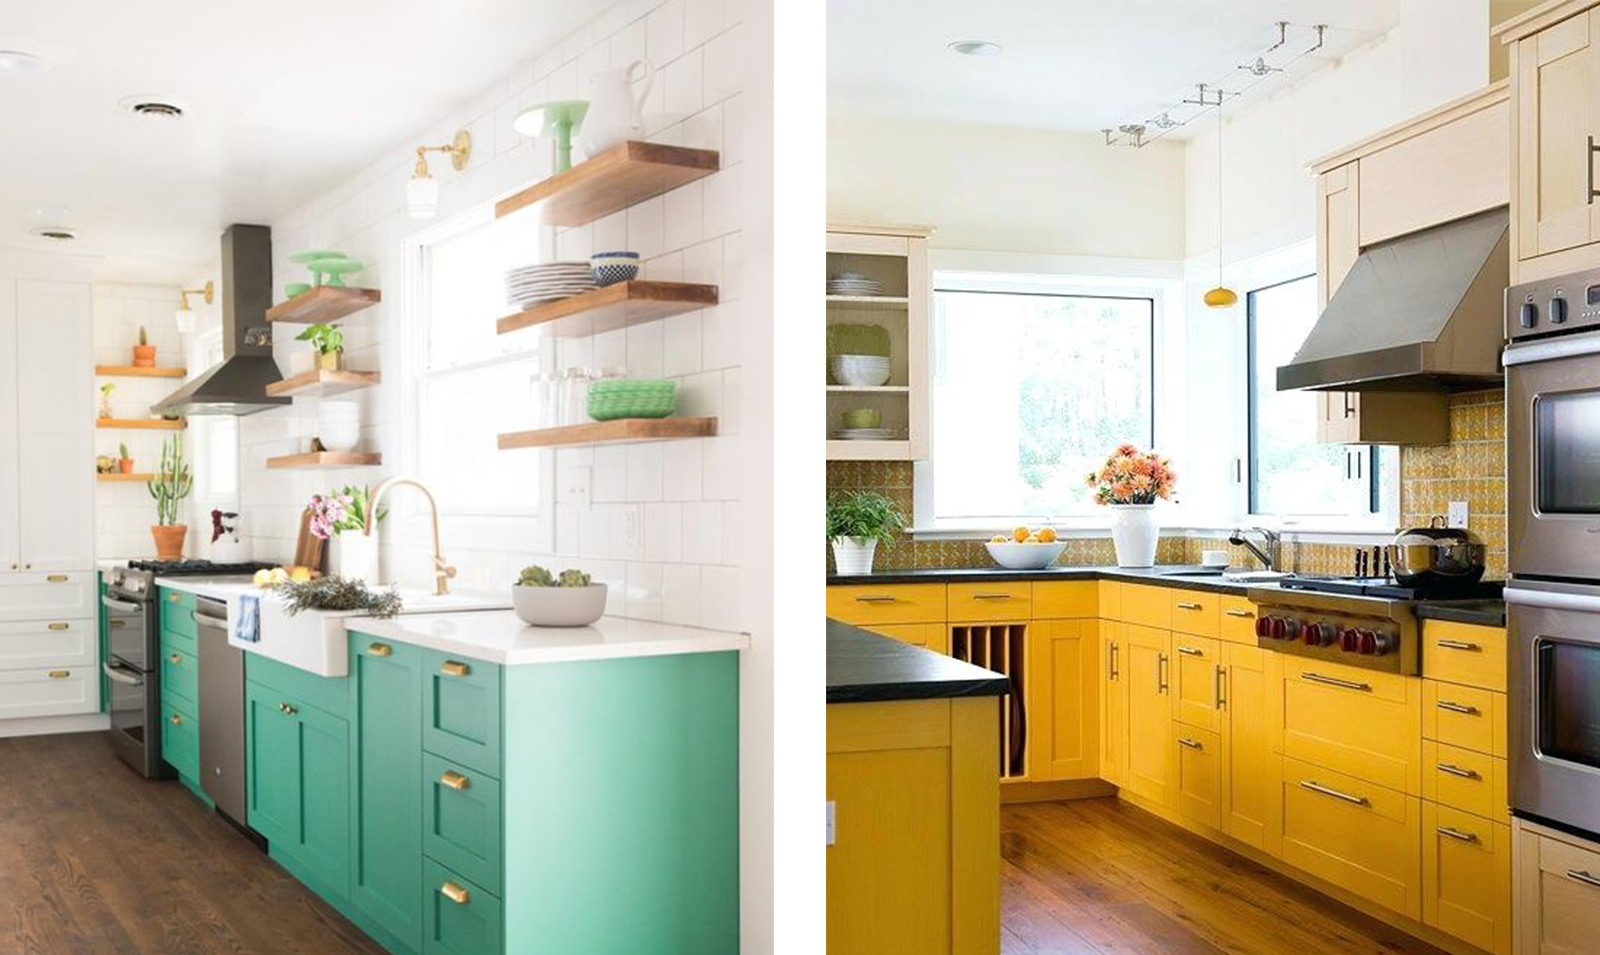 kitchens-green-cabinets-kitchen-yellow-cabinets